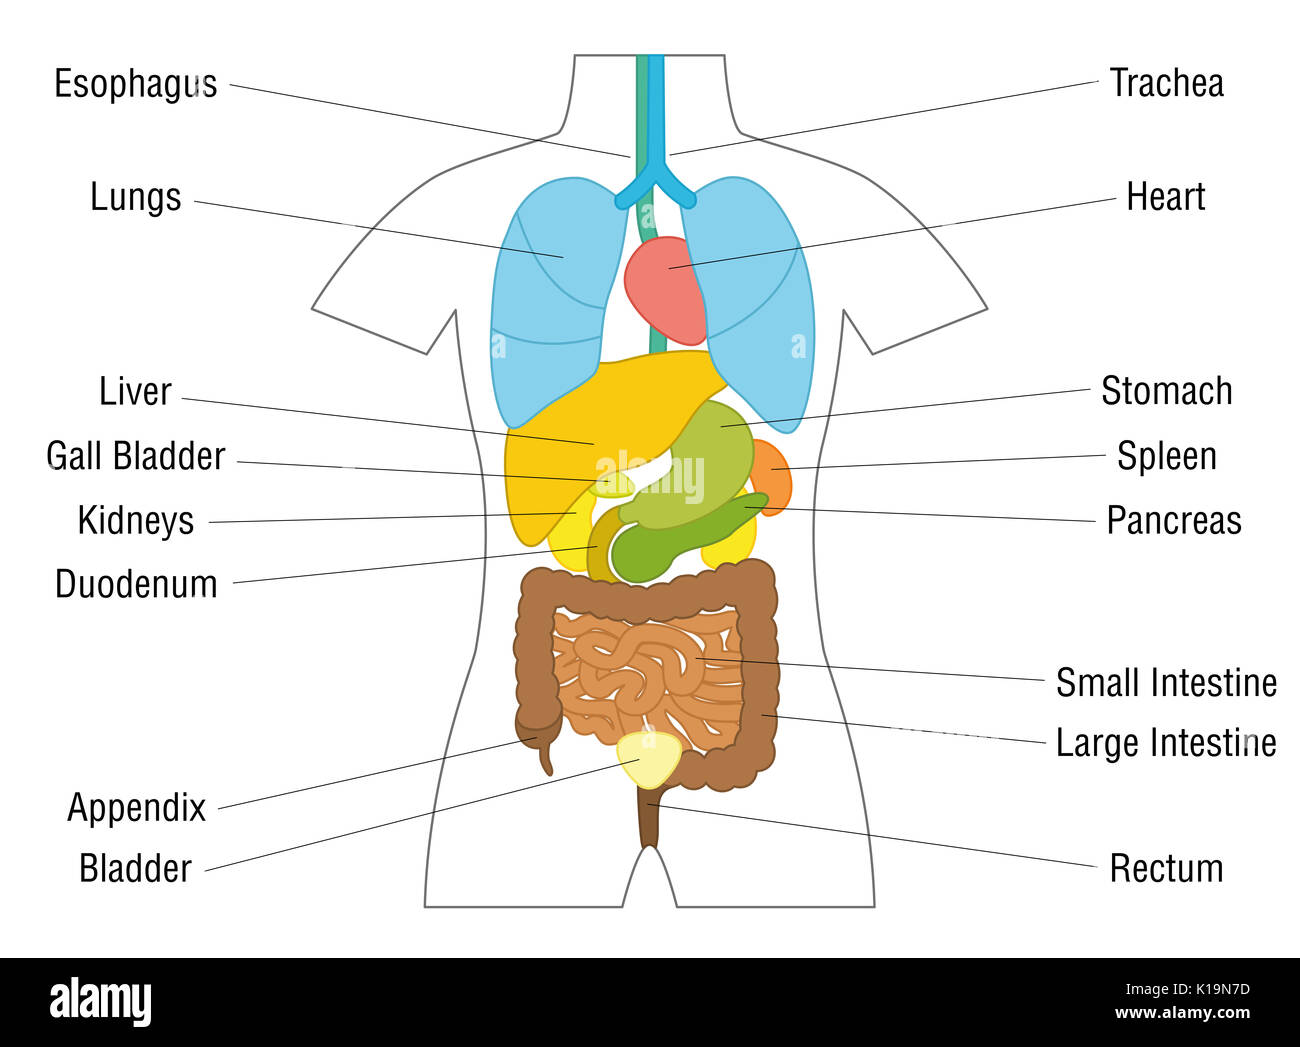 Organs Diagram Isolated Stock Photos Amp Organs Diagram Isolated Stock Images